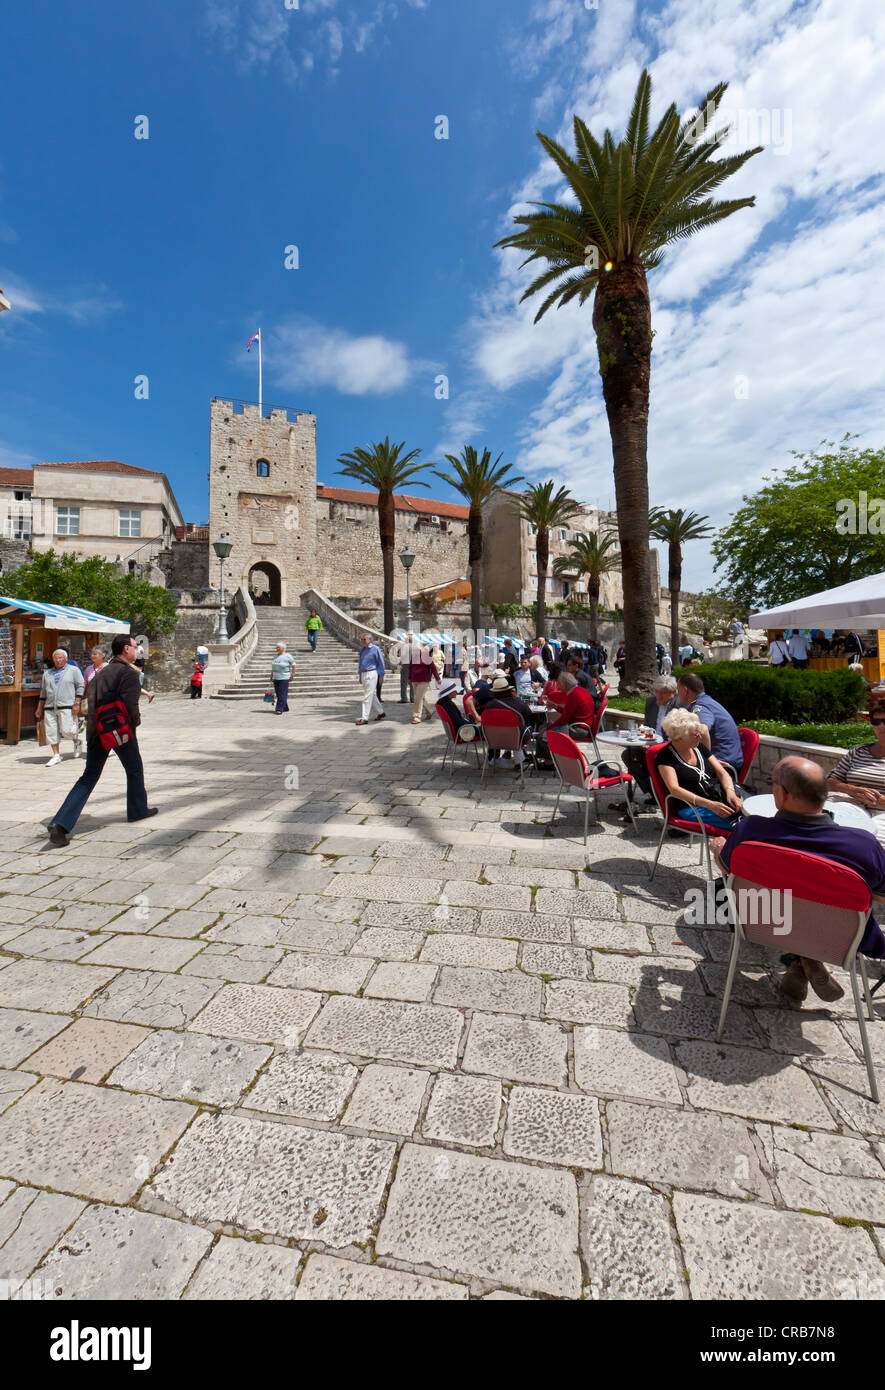 Historic centre of Korcula with tourists in front of the castle, central Dalmatia, Dalmatia, Adriatic coast, Croatia, - Stock Image